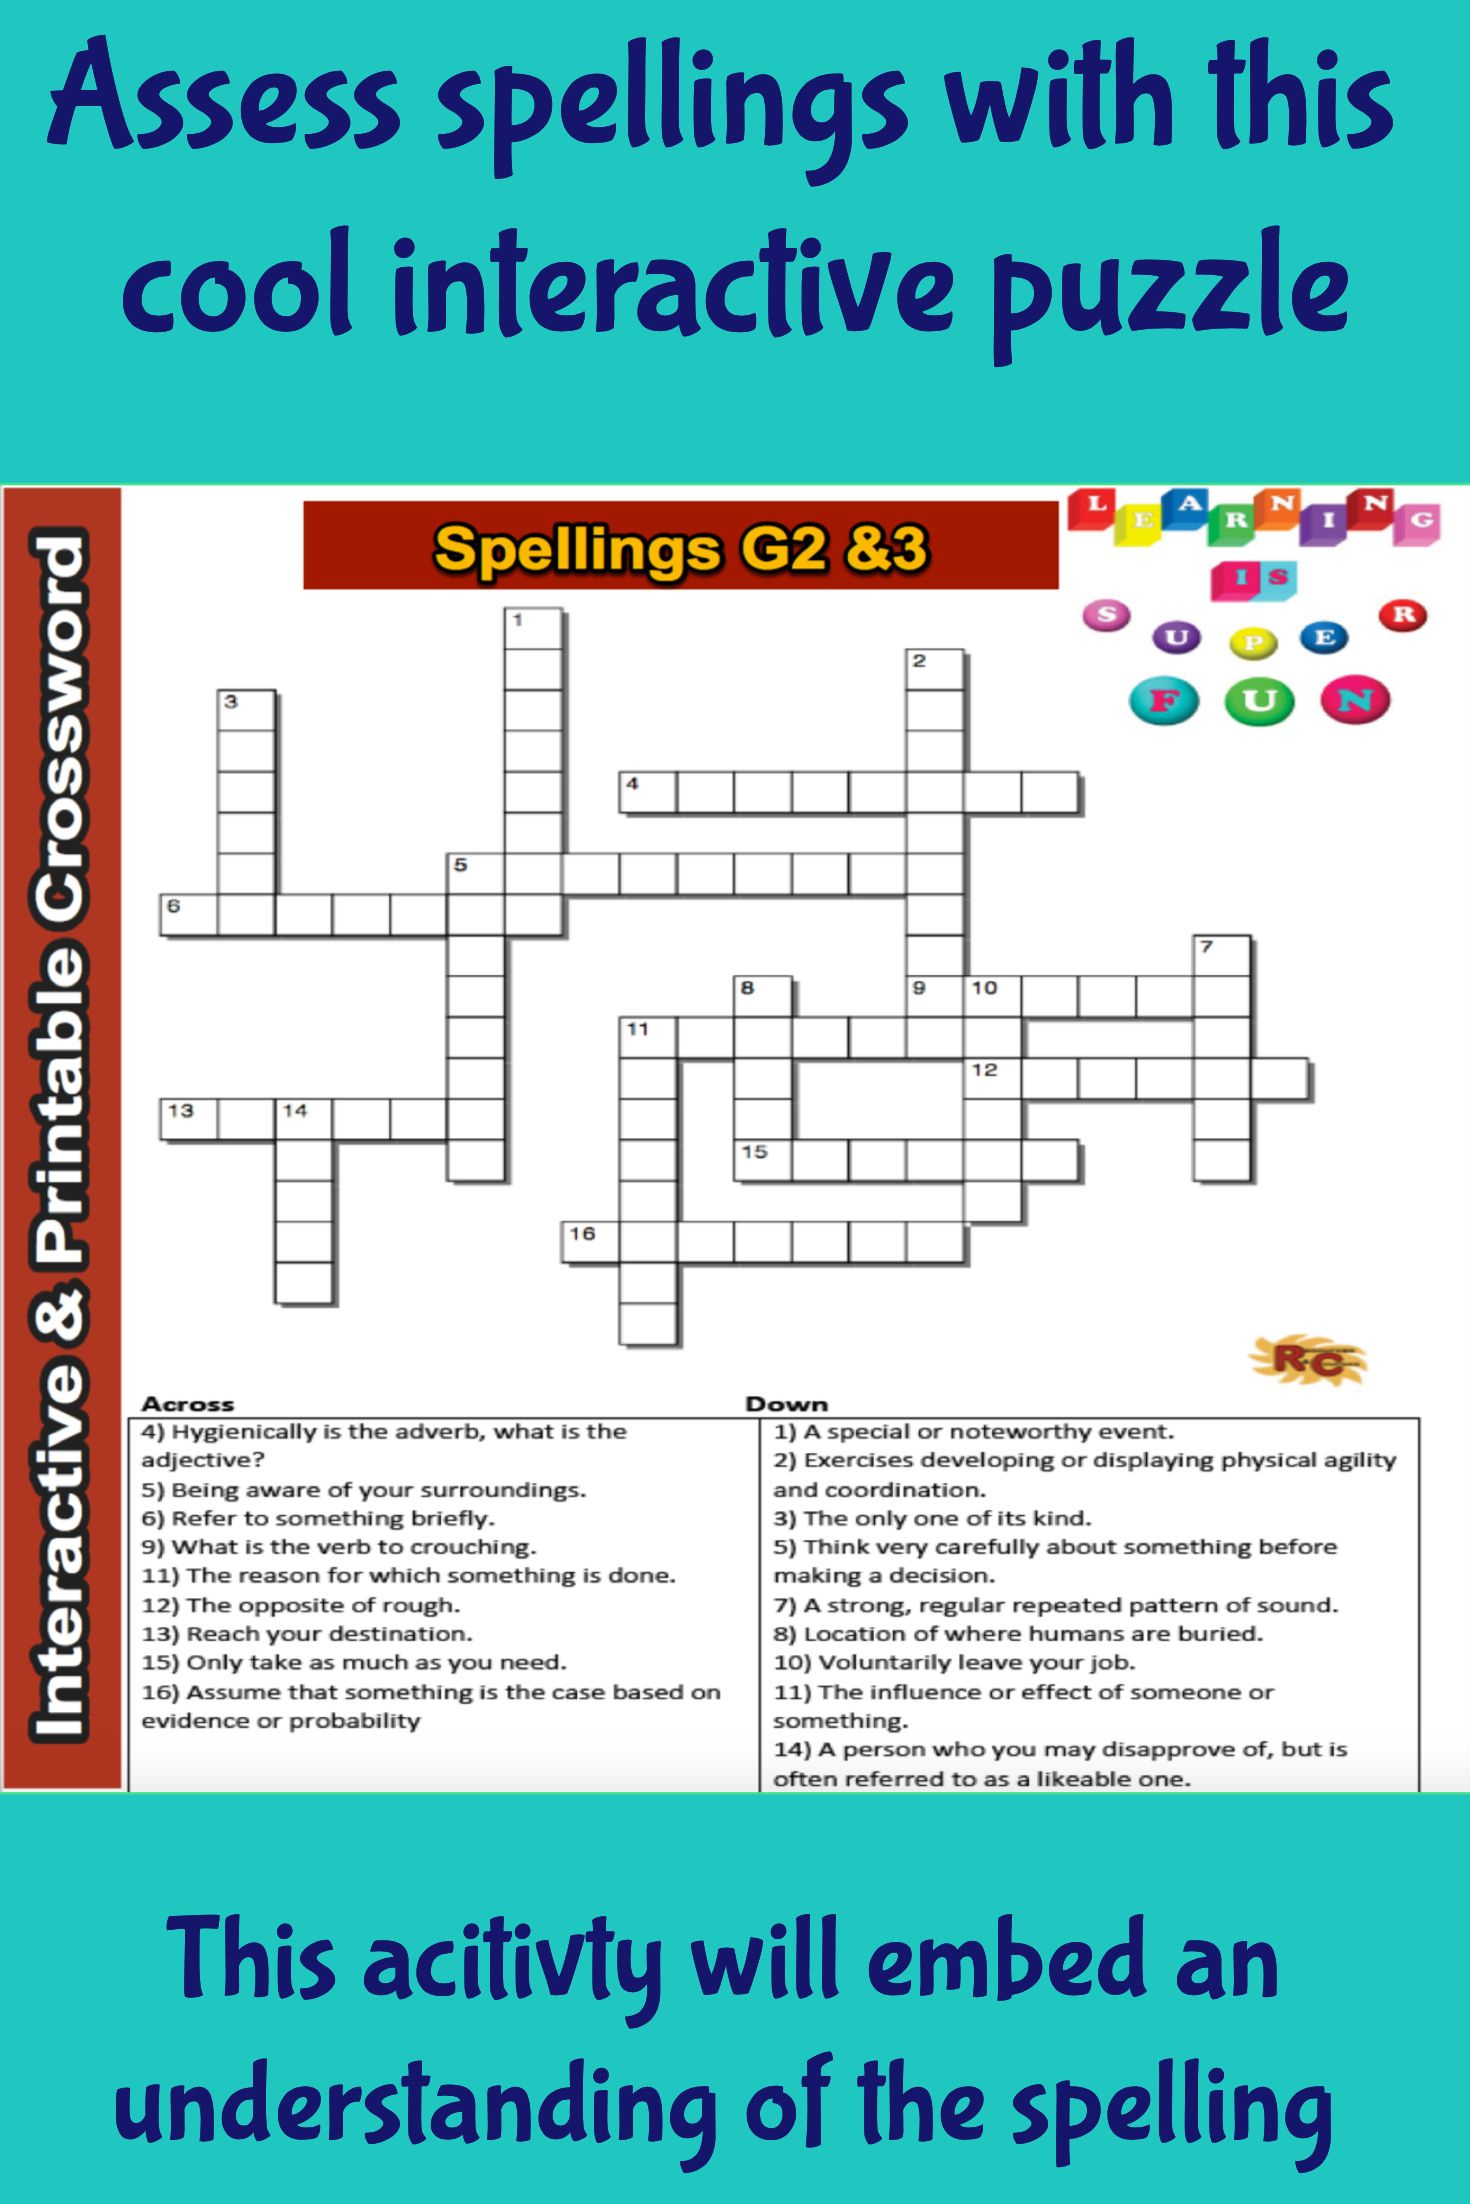 Spelling Grade 2&3 Interactive & Printable Crossword Puzzle | Word - Fun Crossword Puzzles Printable